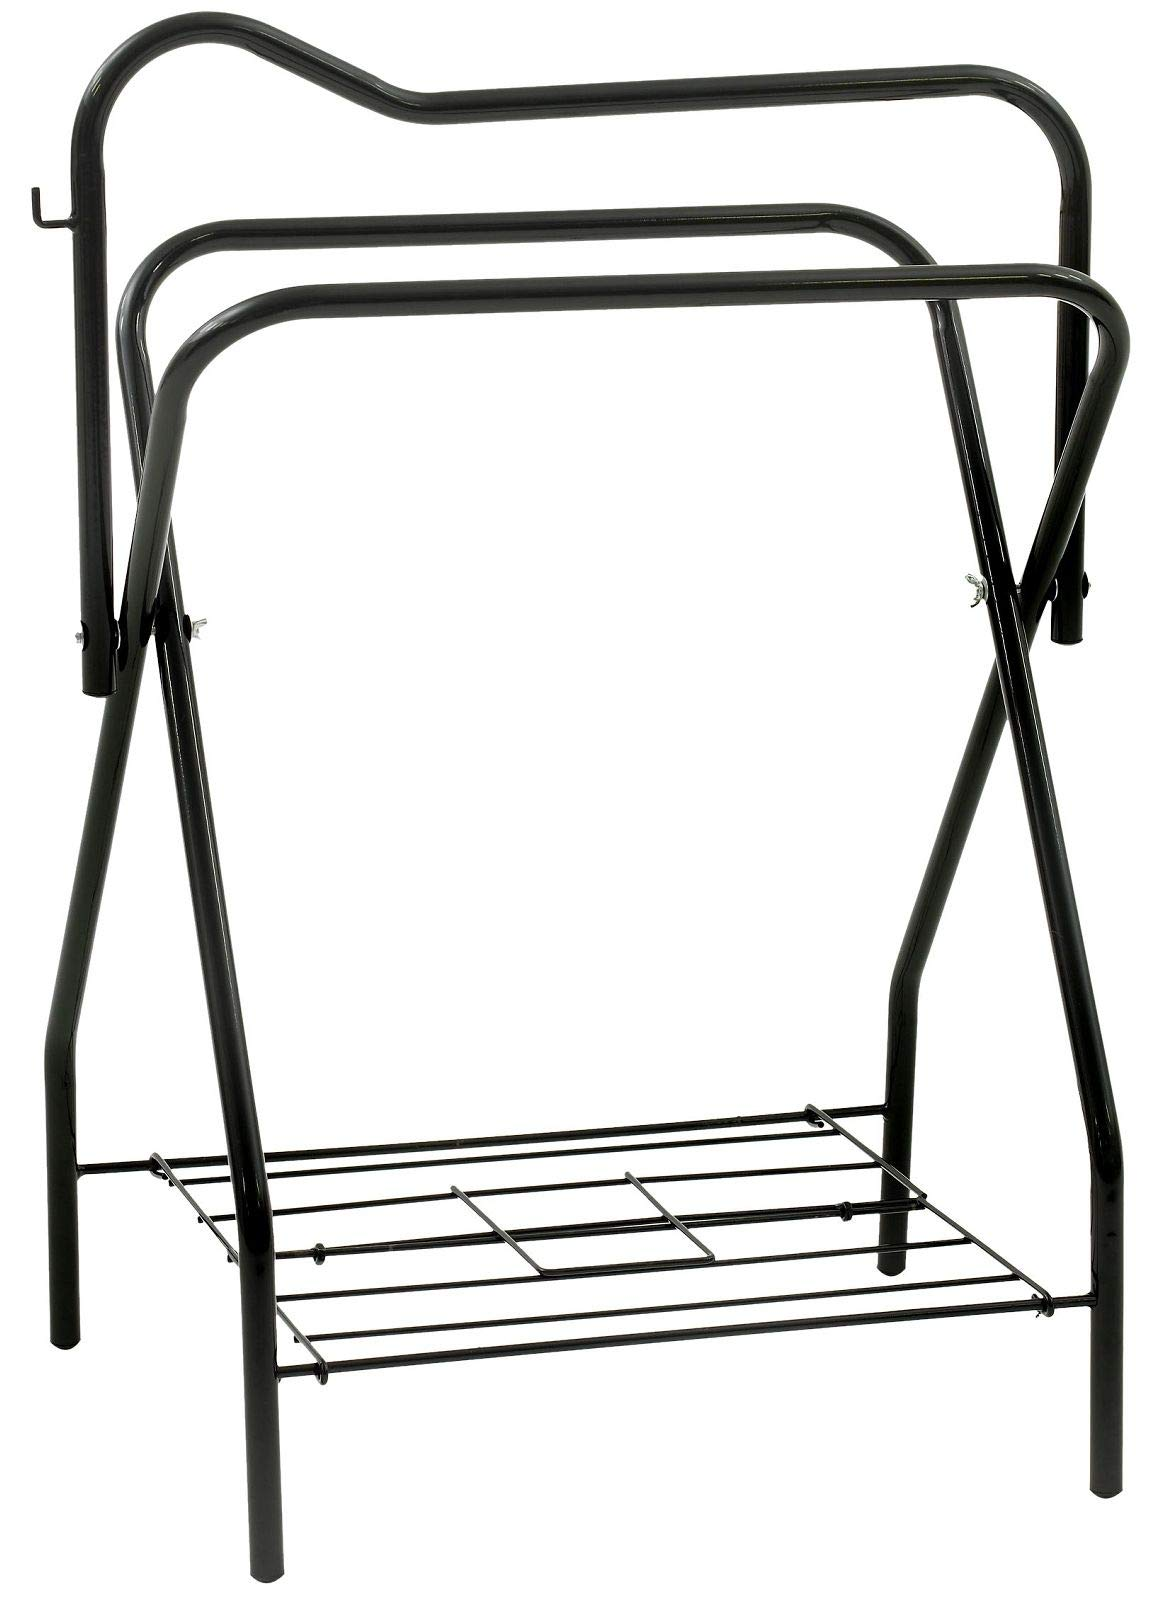 Equiessent Portable Saddle Rack Black by Equiessentials (Image #1)